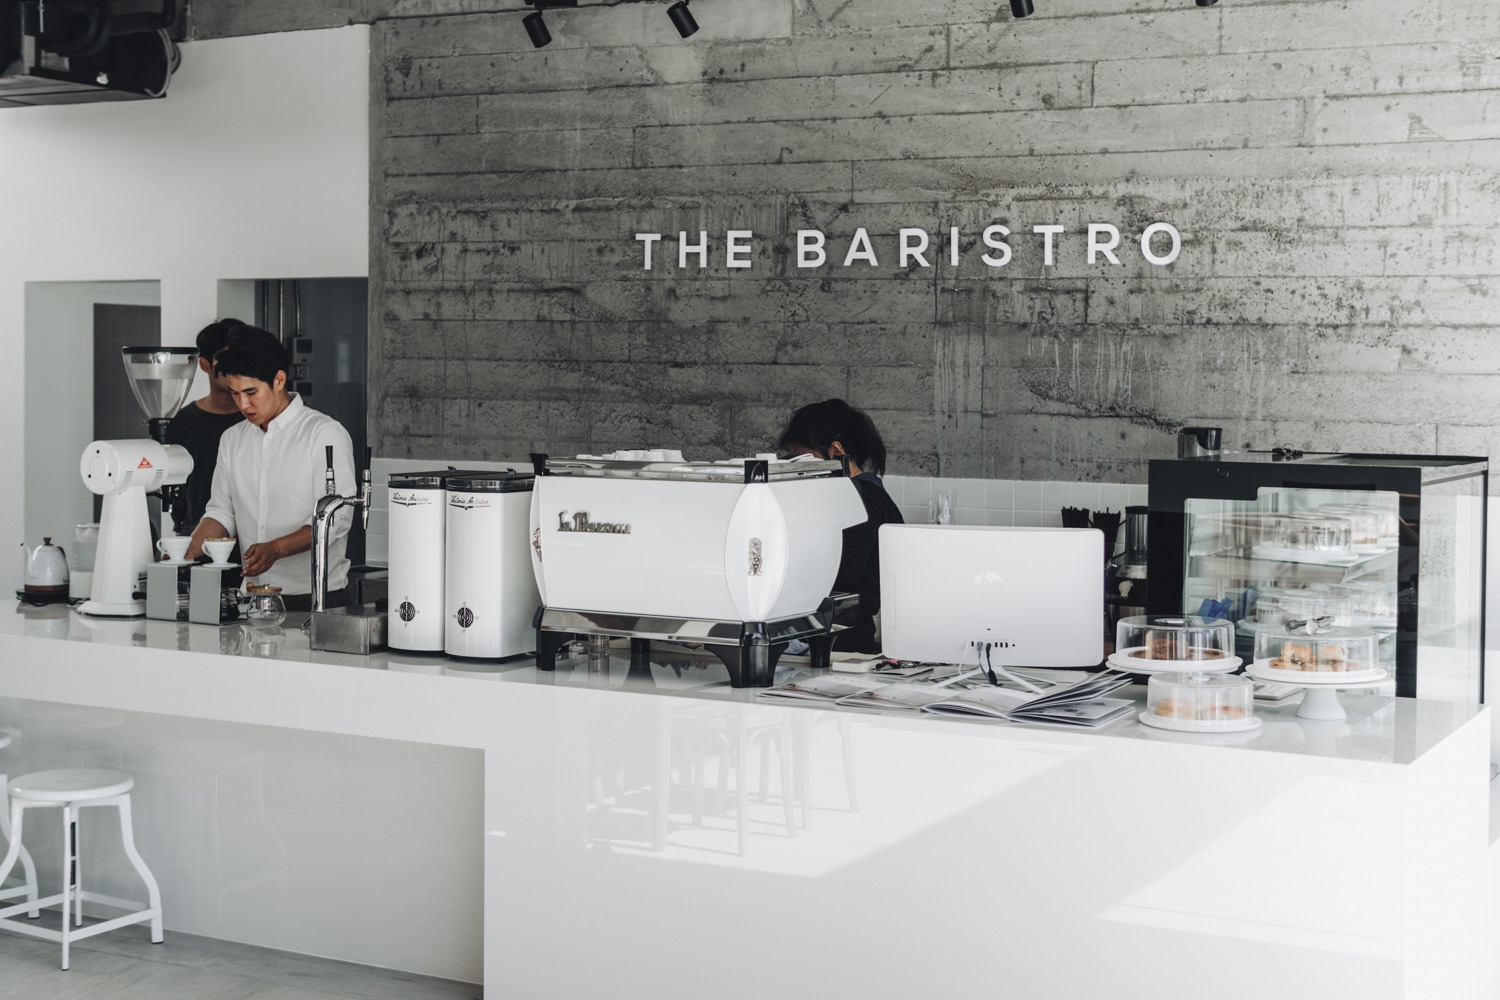 The baristro at ping river coffee shop